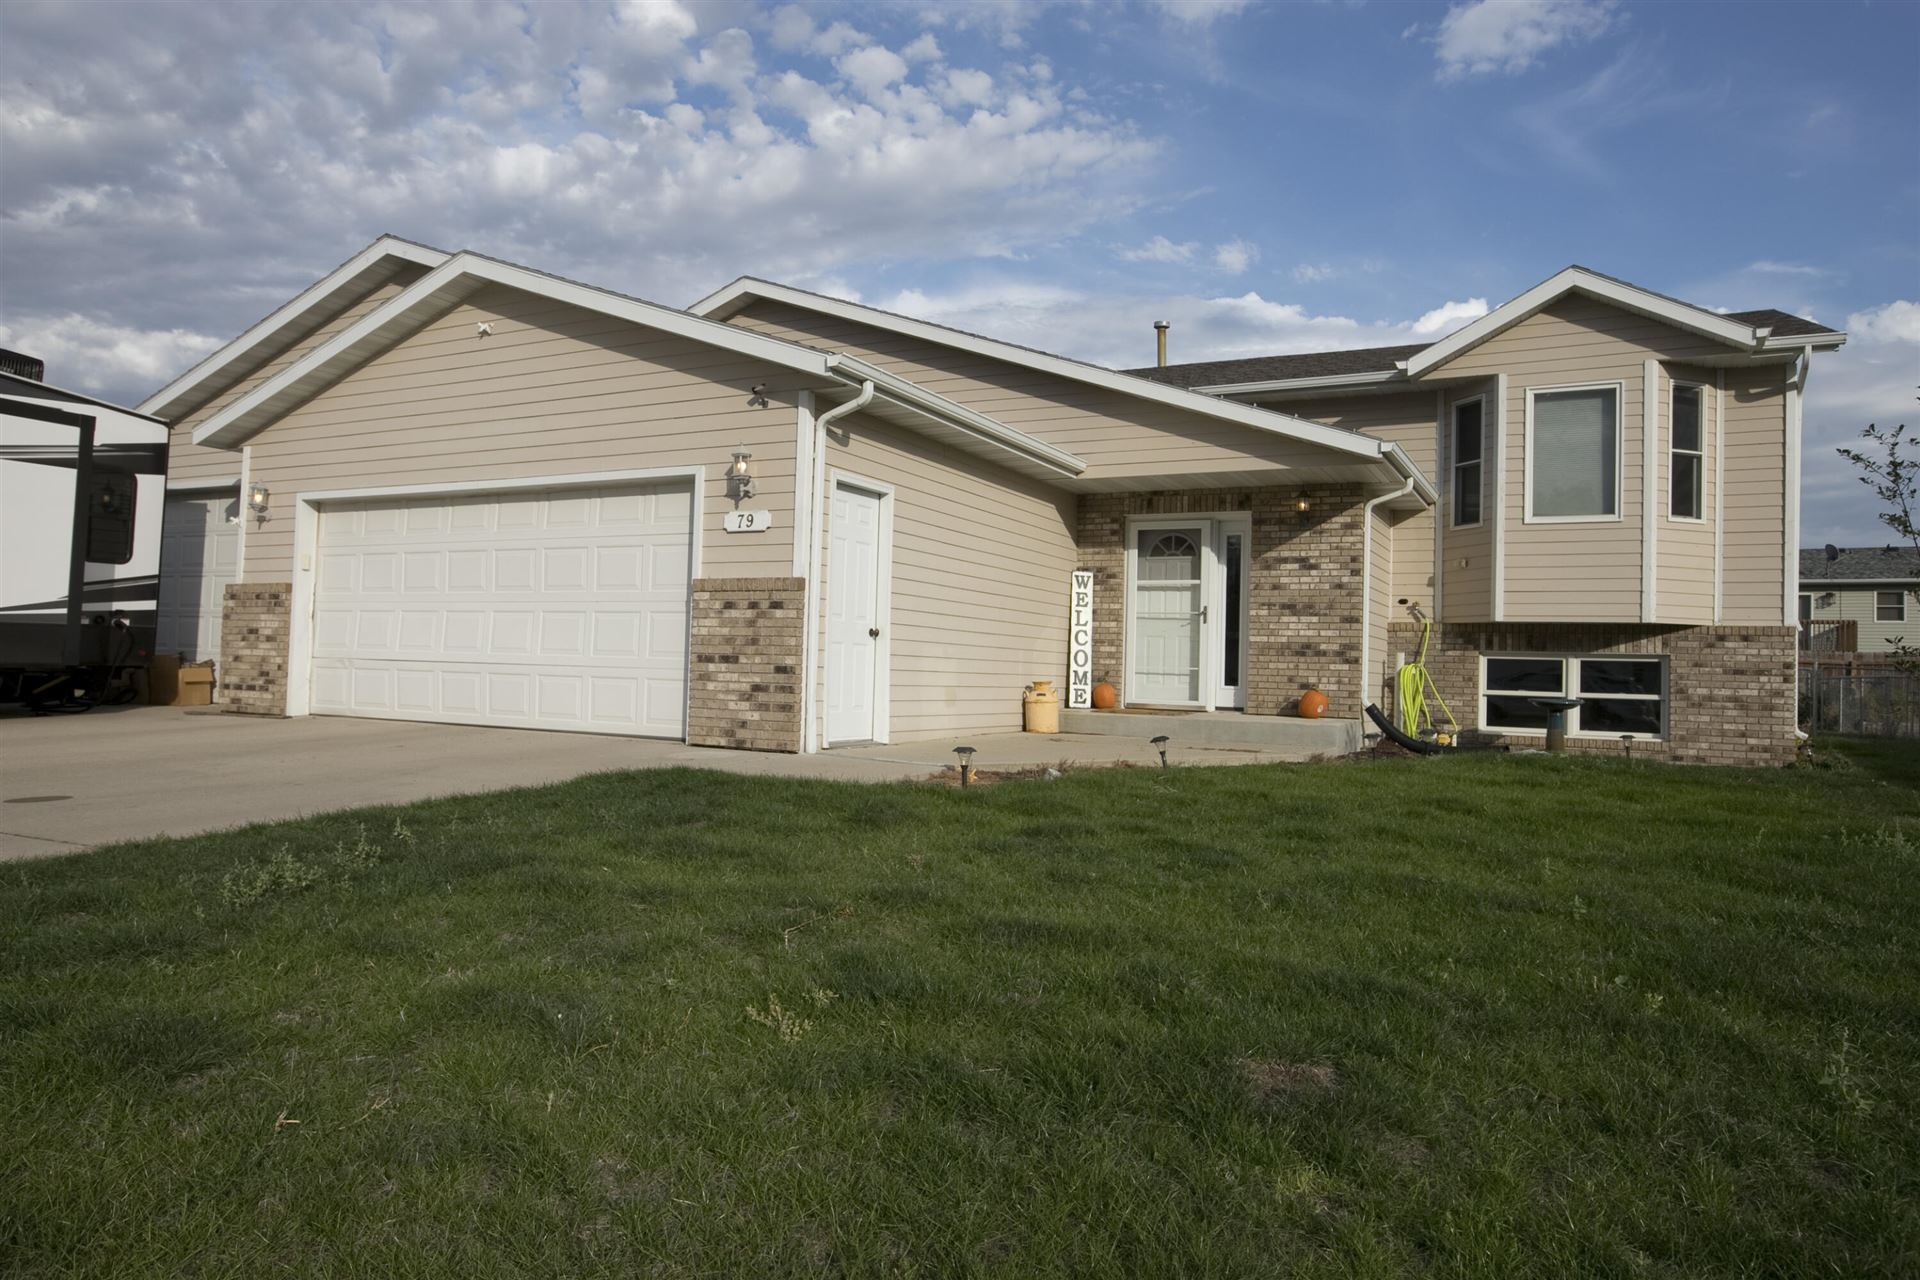 79 Weir Drive, Lincoln, ND 58504 - #: 412393